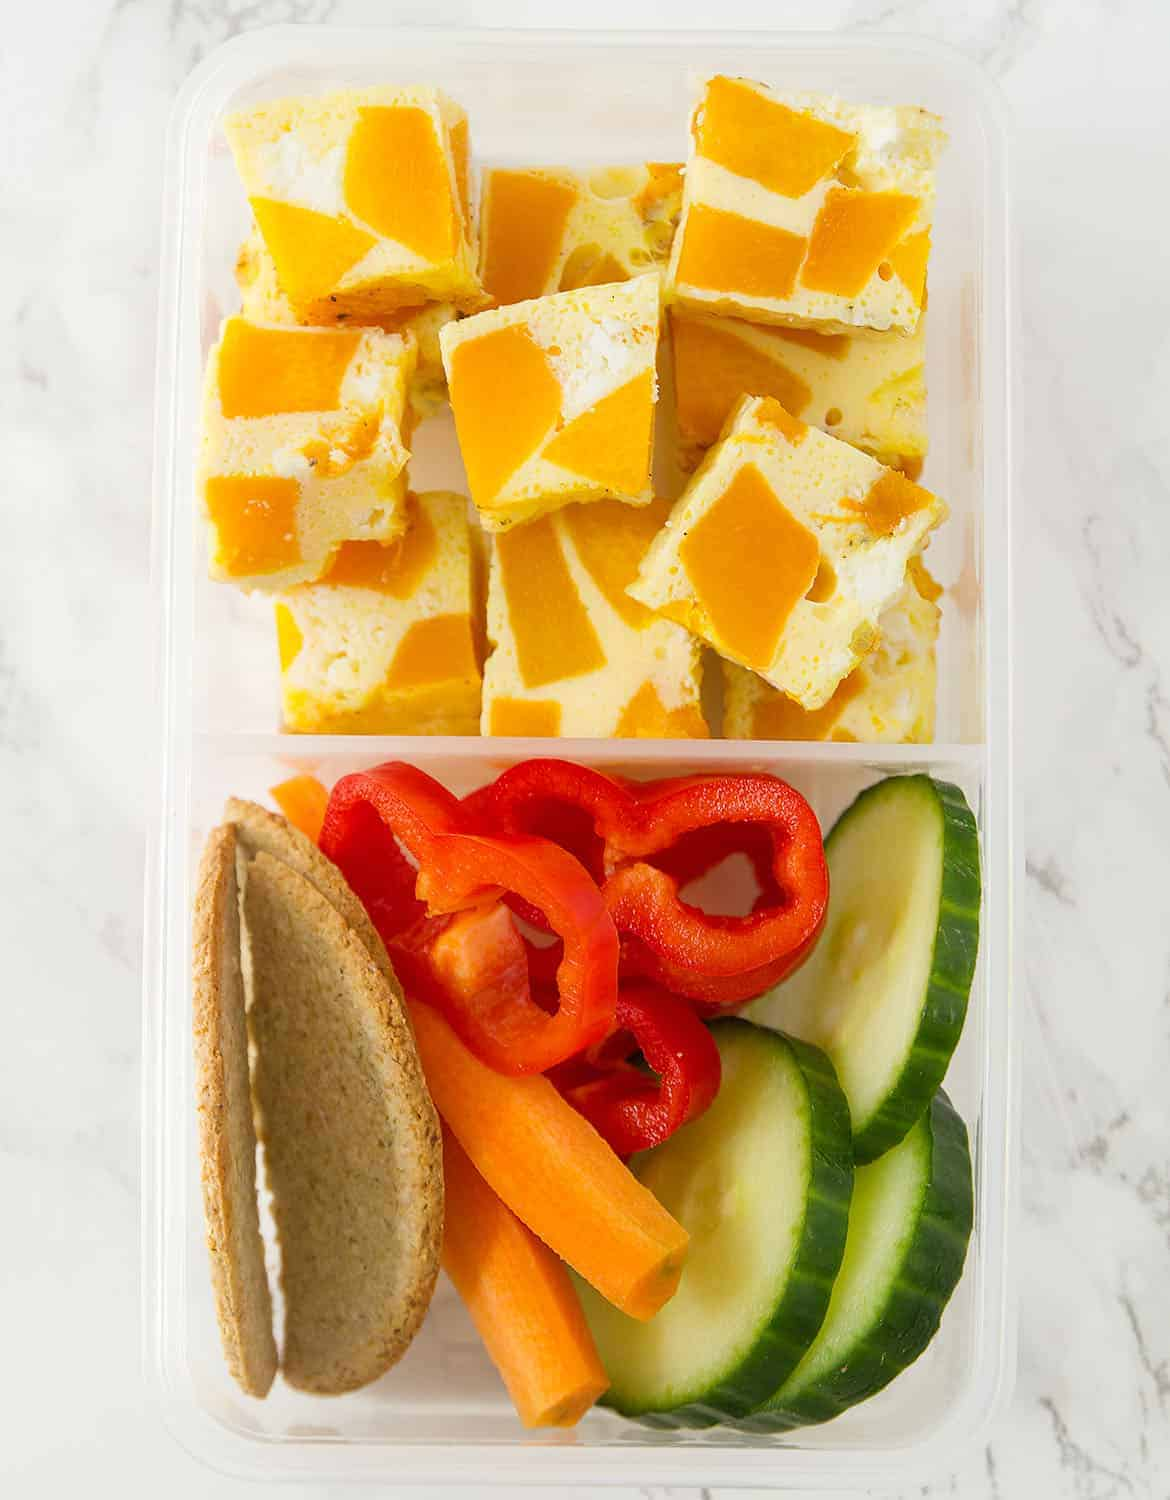 Cubed pumpkin frittata in a meal prep container with fresh vegetables on the side.